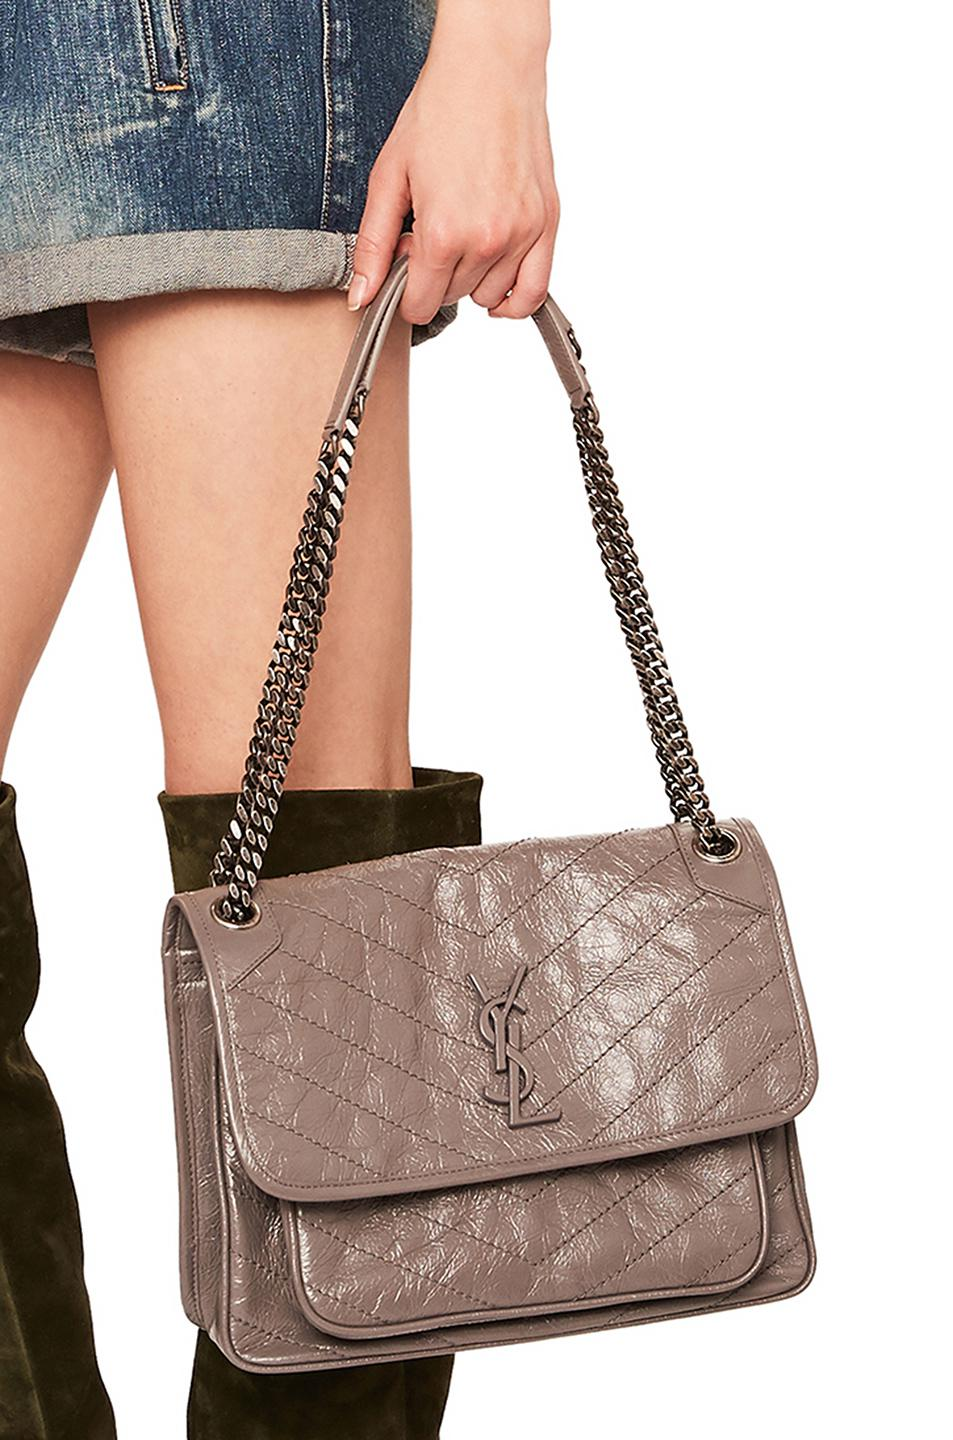 Saint Laurent Medium Niki Monogramme Chain Bag In Fog Lyst